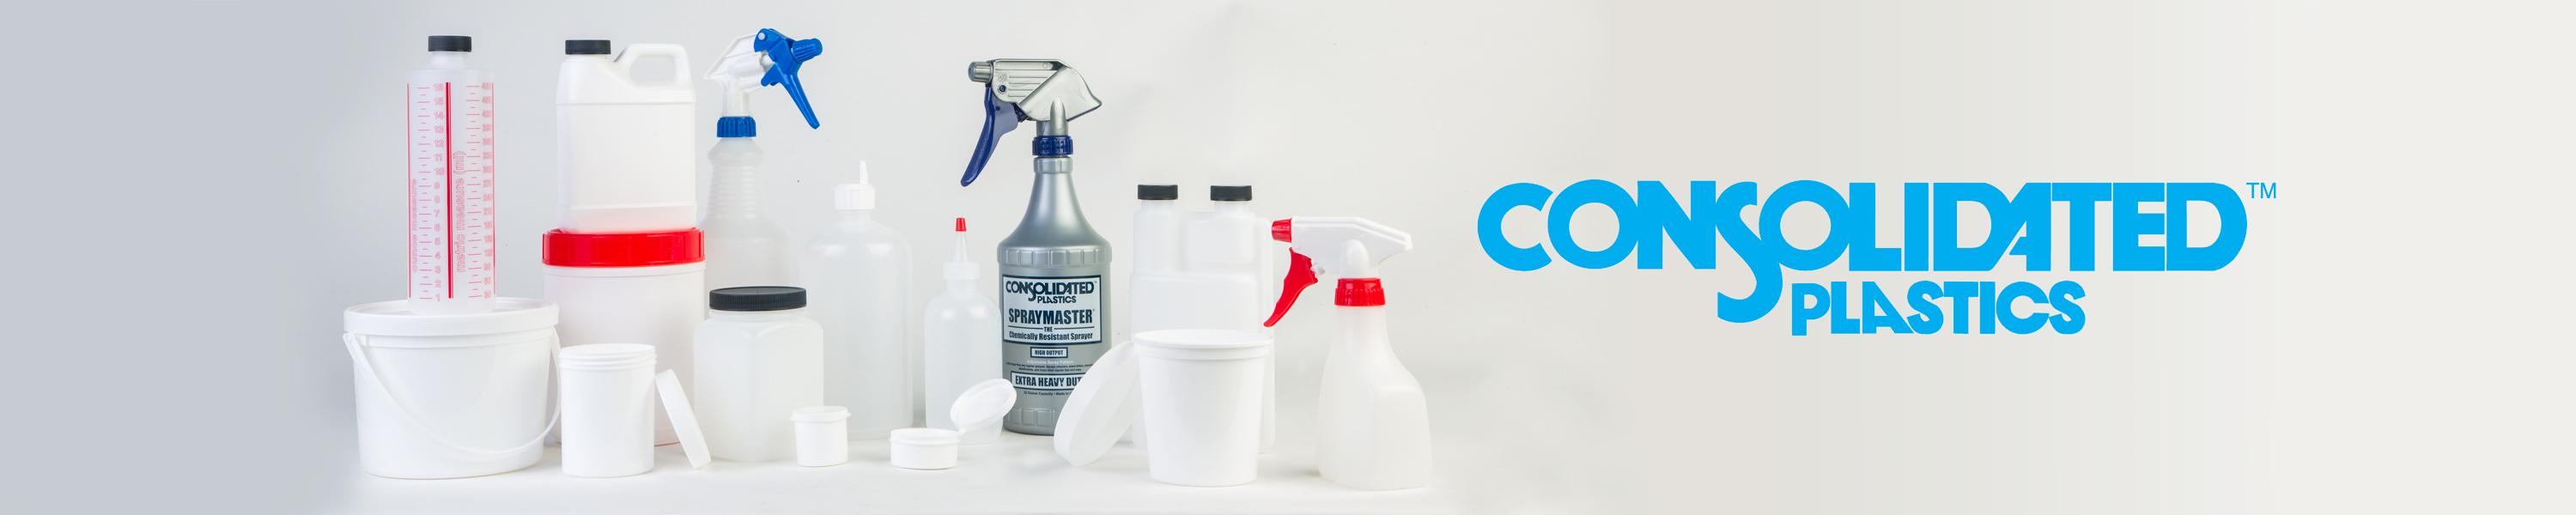 e83e43fd6a0a Amazon.com: Consolidated Plastics: Spray Bottles